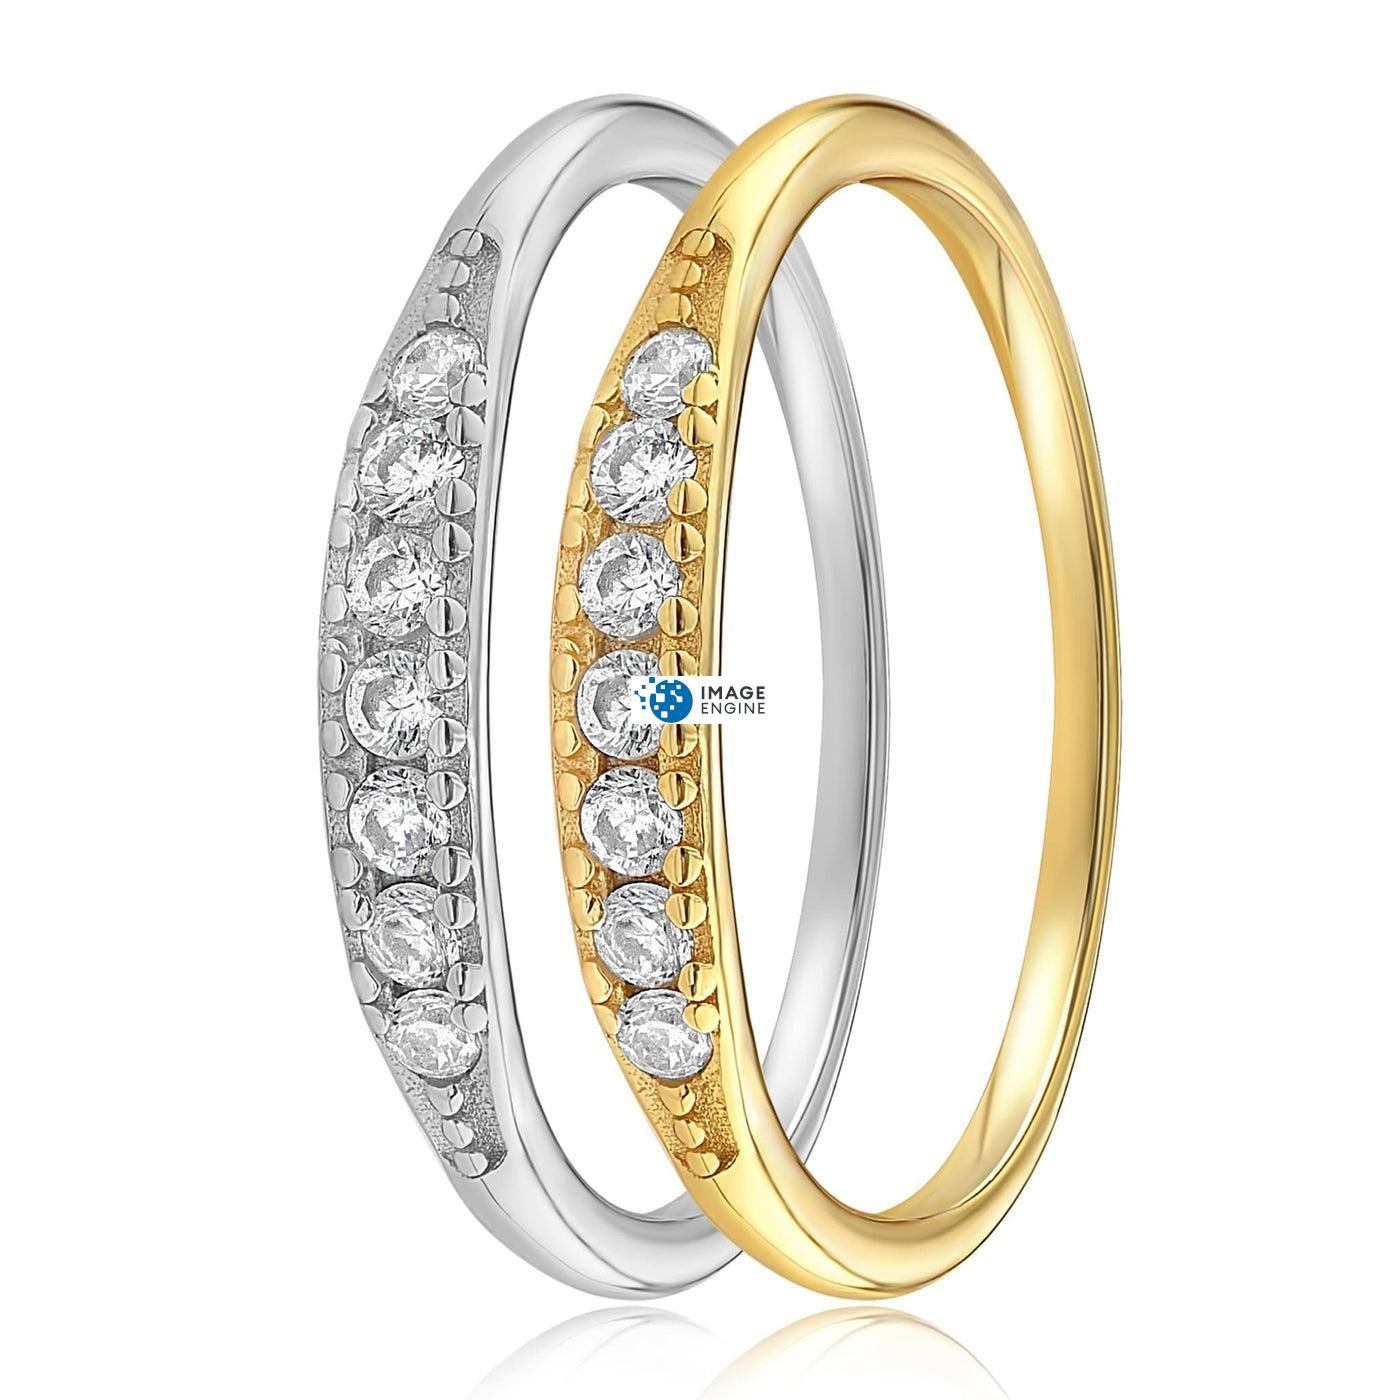 Kathleen Stack Ring - Side by Side - 18K Yellow Gold and 925 Sterling Silver